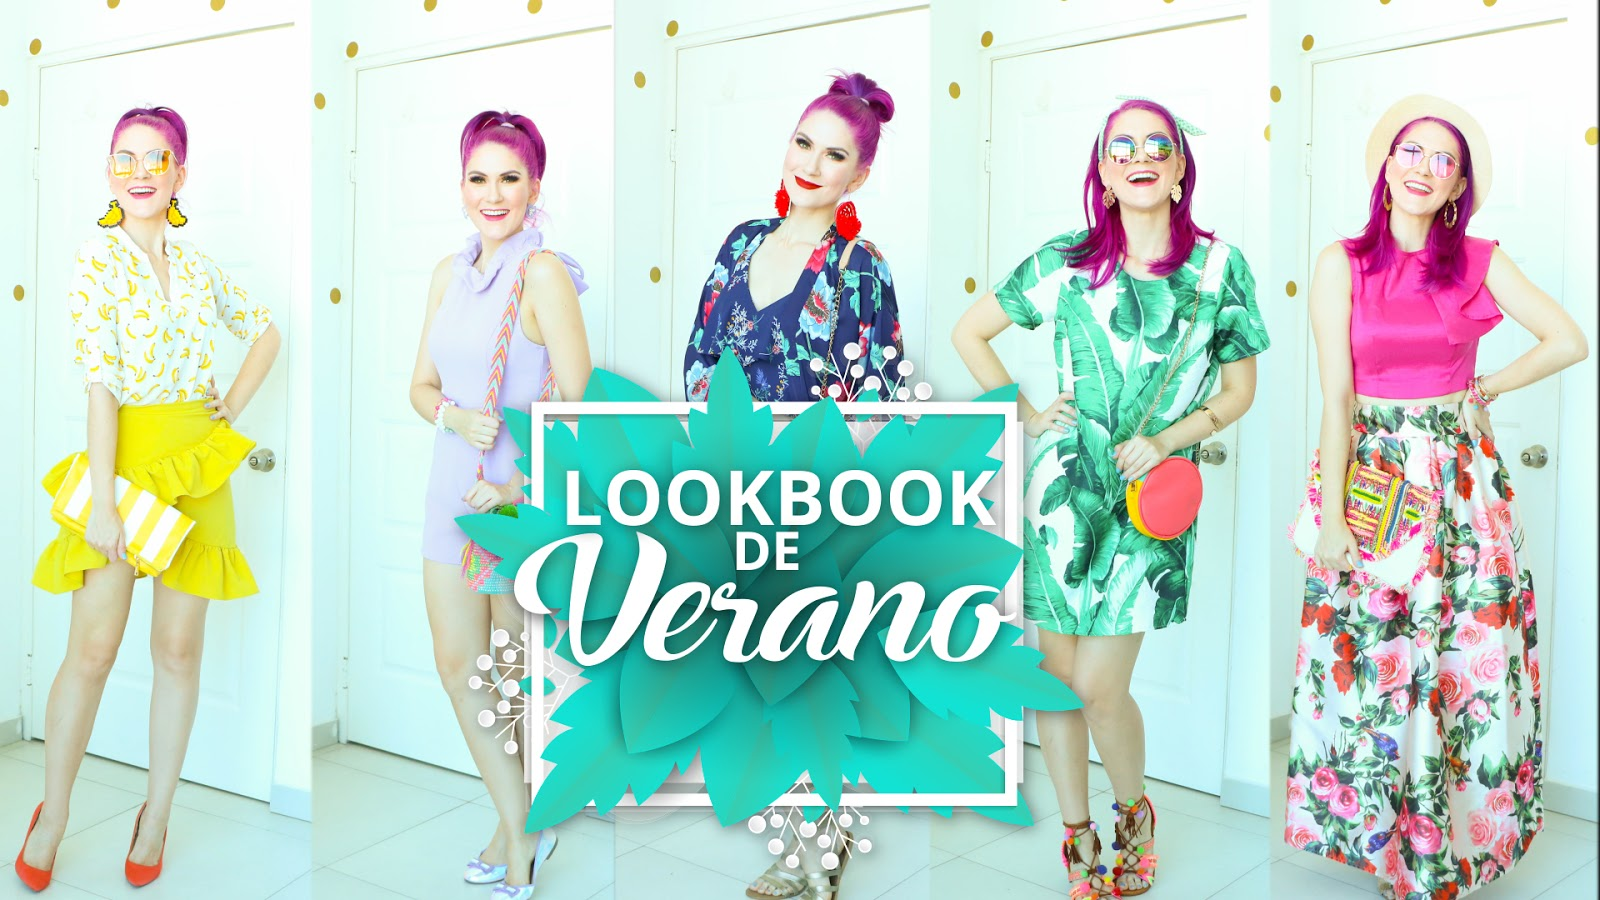 Lookbook de Verano con 6 ideas de Outfits con Tendencias de la Temporada